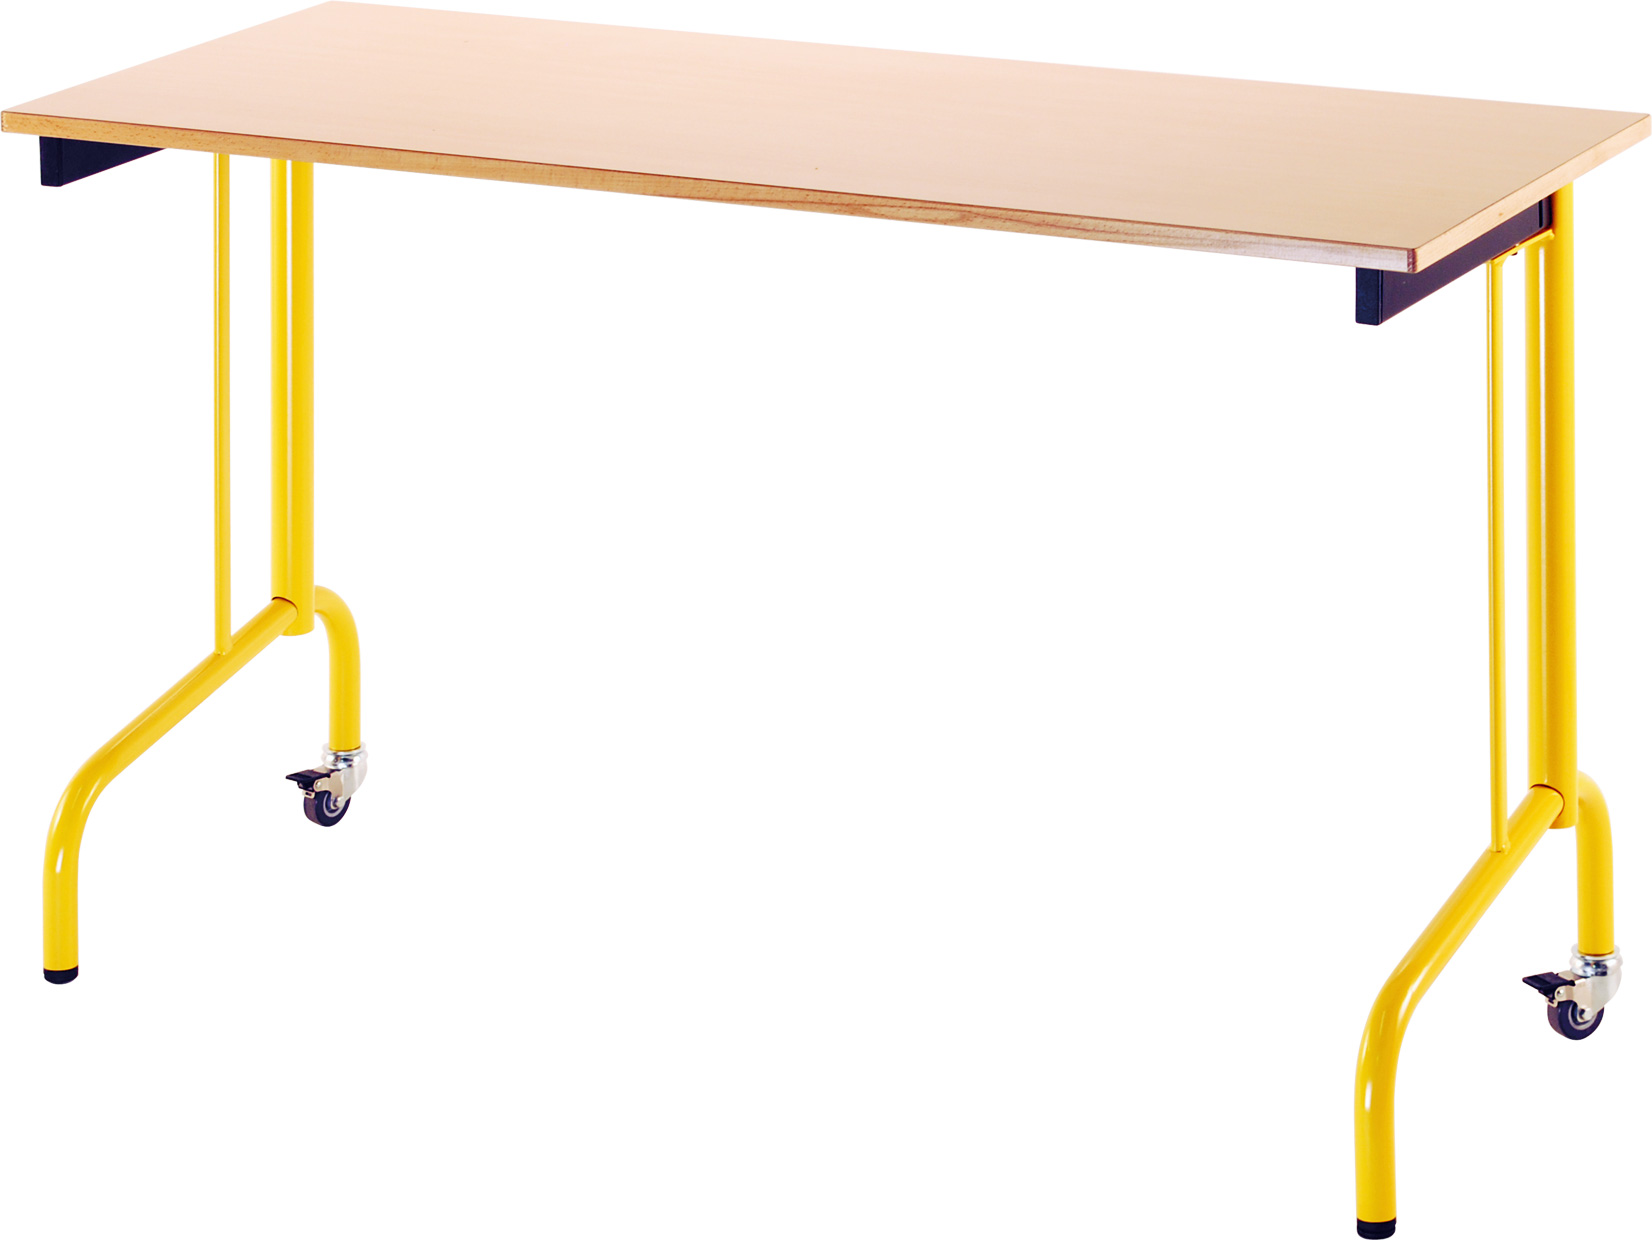 Table scolaire MOBILE TOALENN